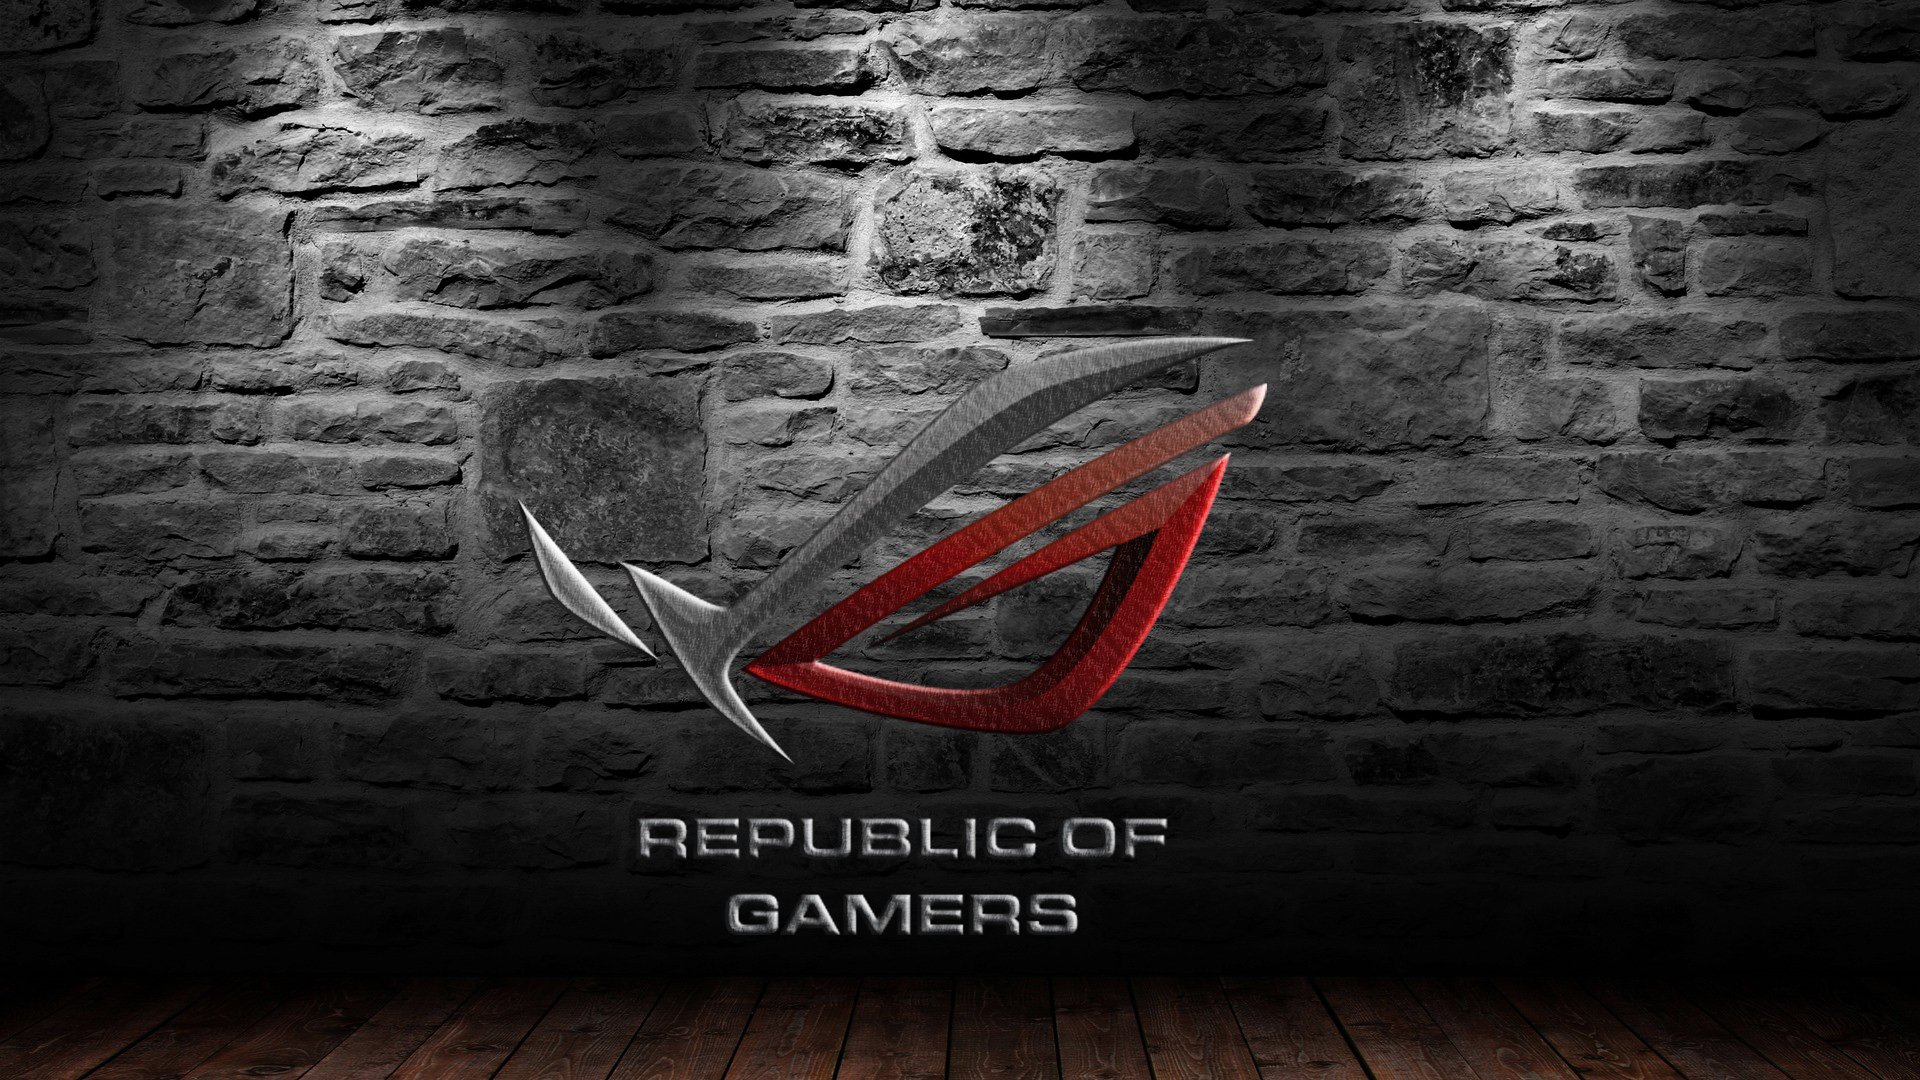 Free Download Asus Rog Republic Of Gamers Logo Hd 1920x1080